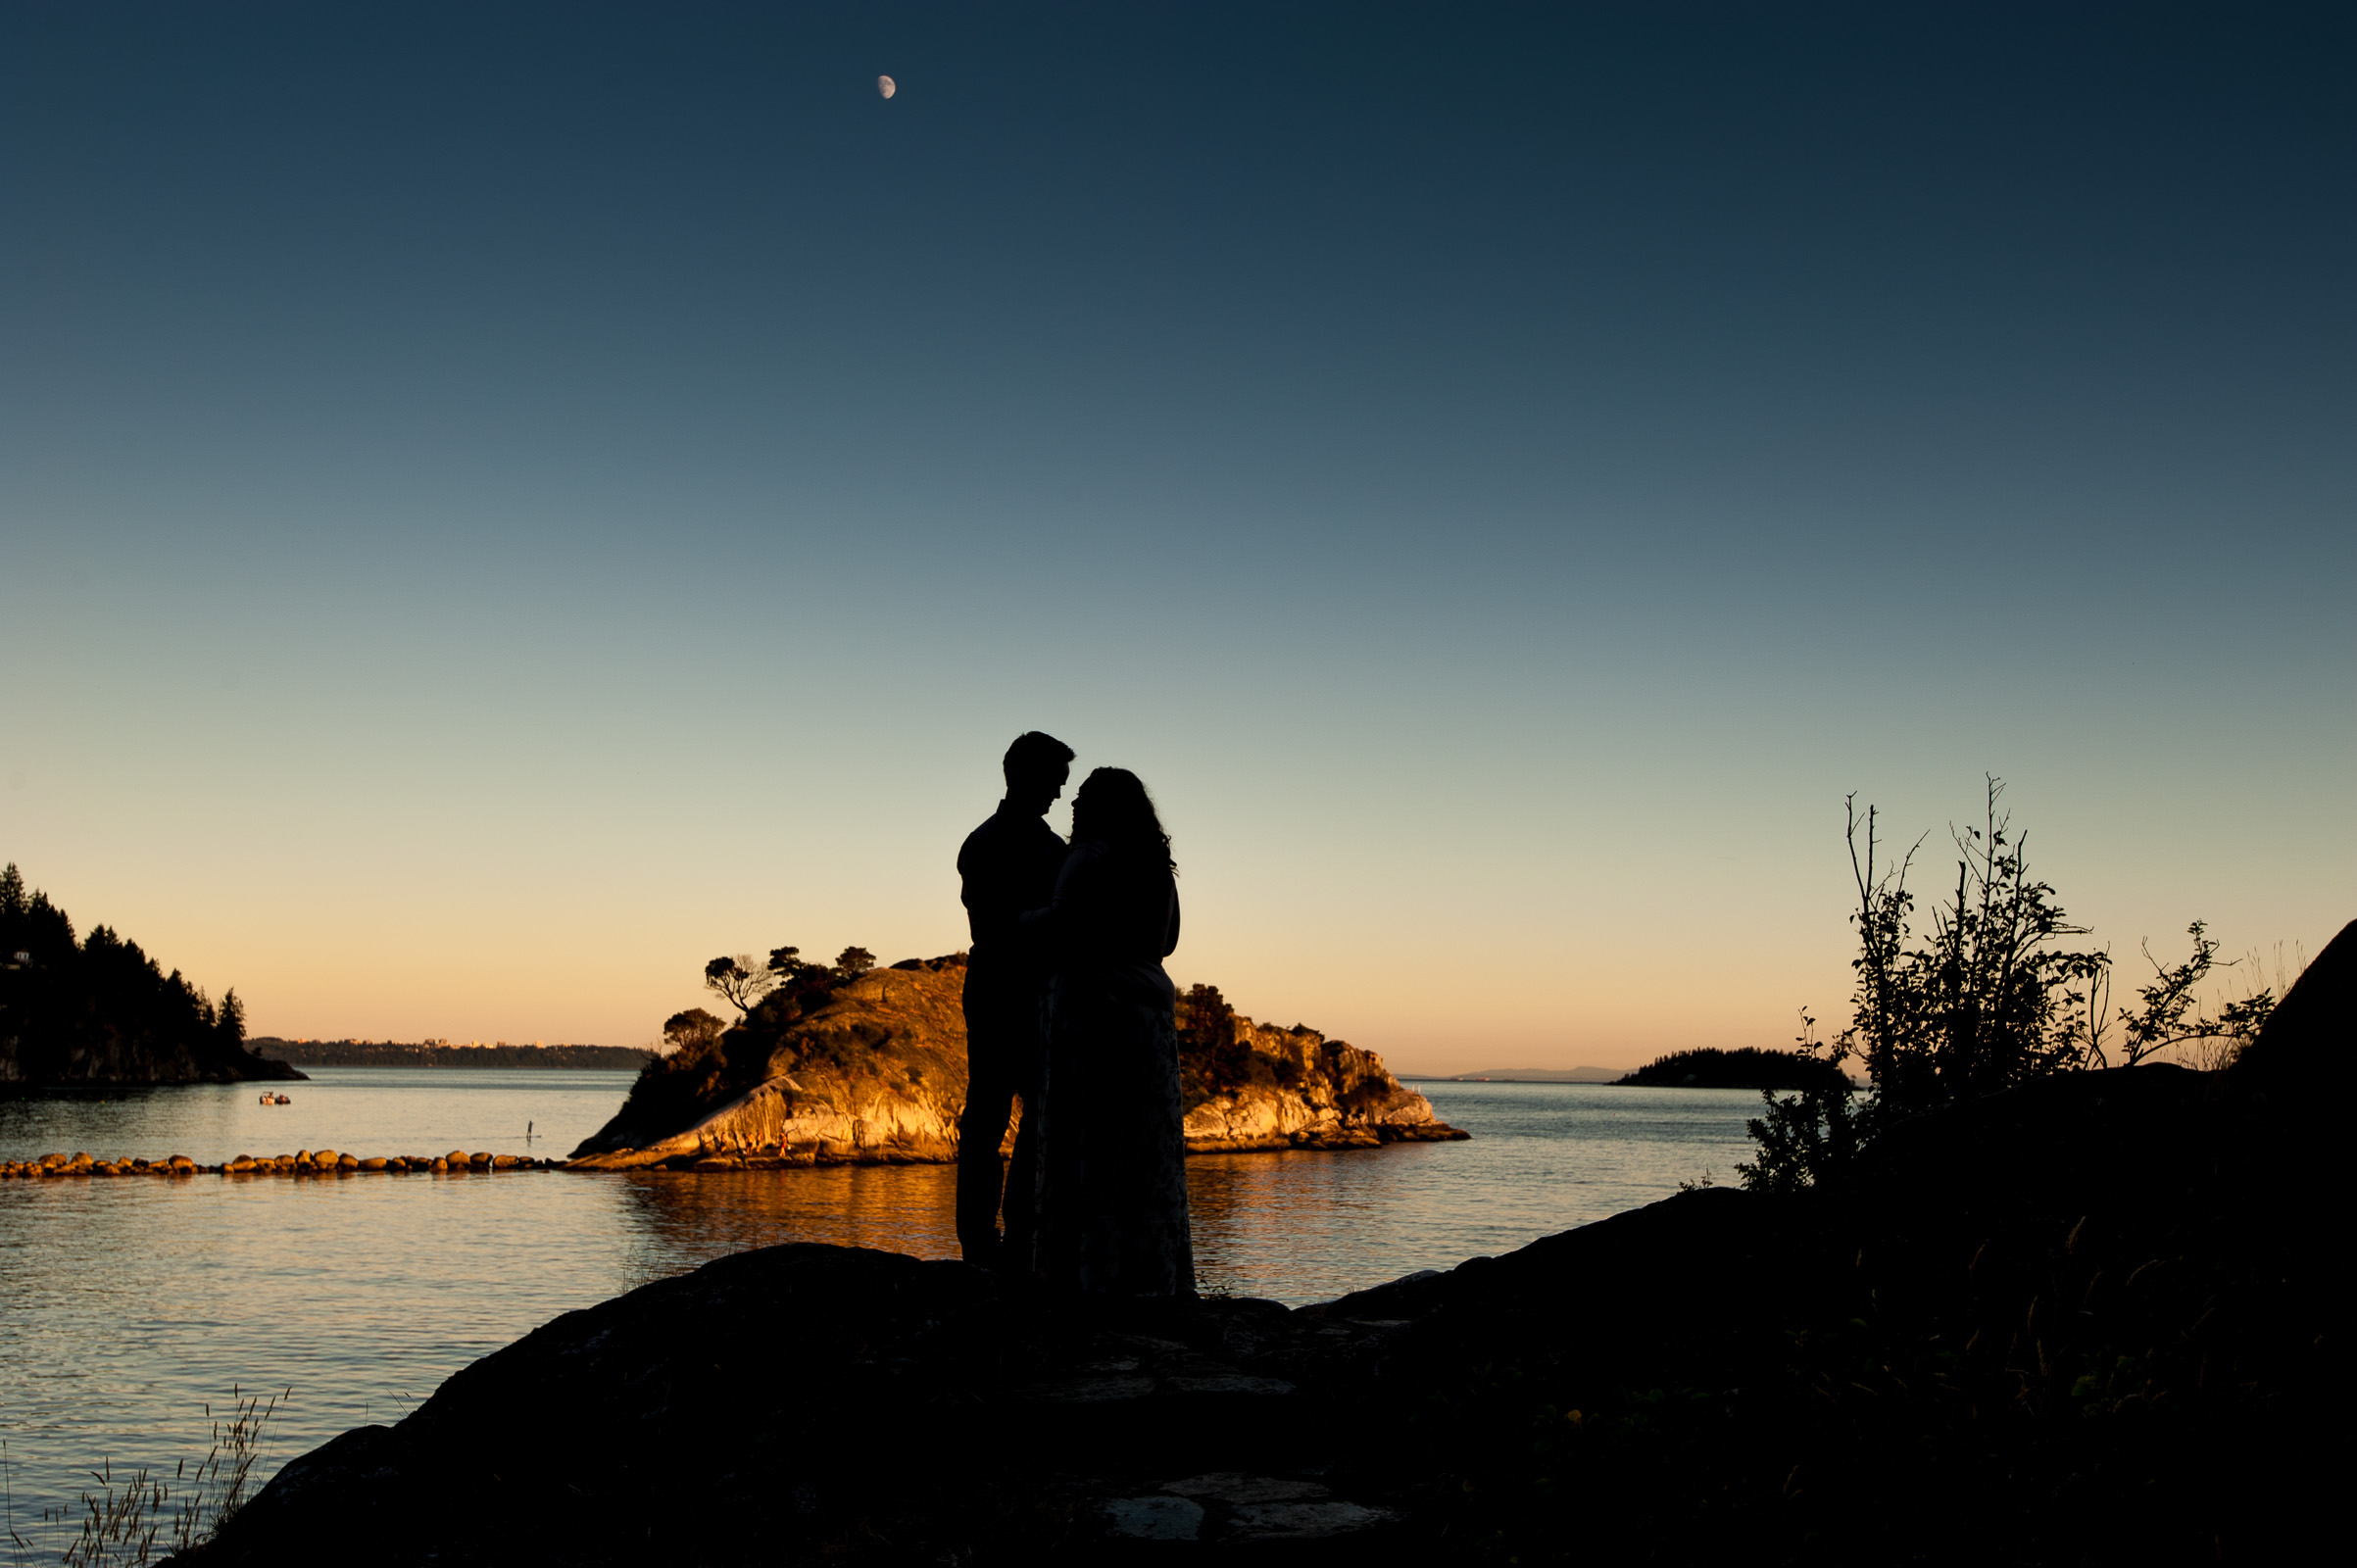 vancouver-island-wedding-photographers-whytecliff-park-engagement-12.jpg